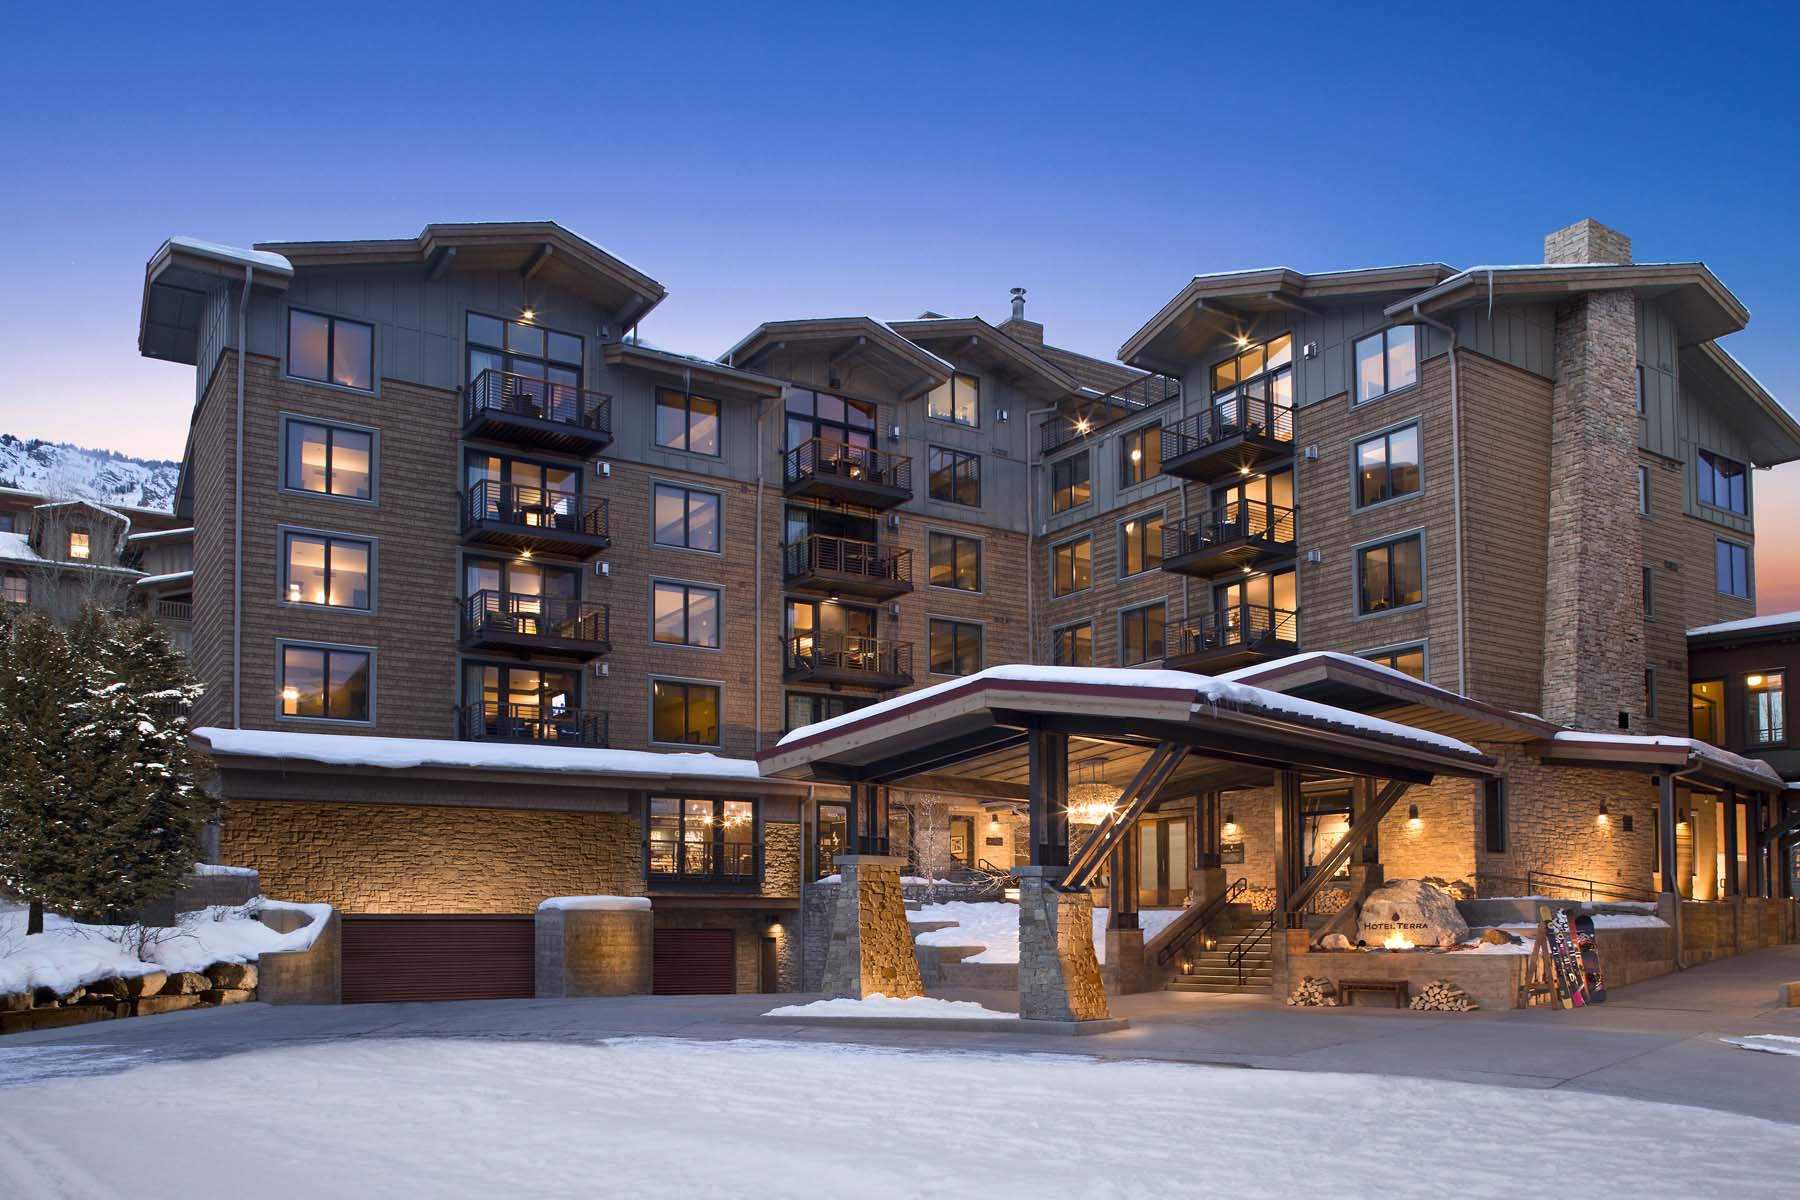 Condominio por un Venta en Slopeside 3 bedroom/4 bath condo 3325 W. Village Drive Unit 267, Teton Village, Wyoming, 83025 Jackson Hole, Estados Unidos